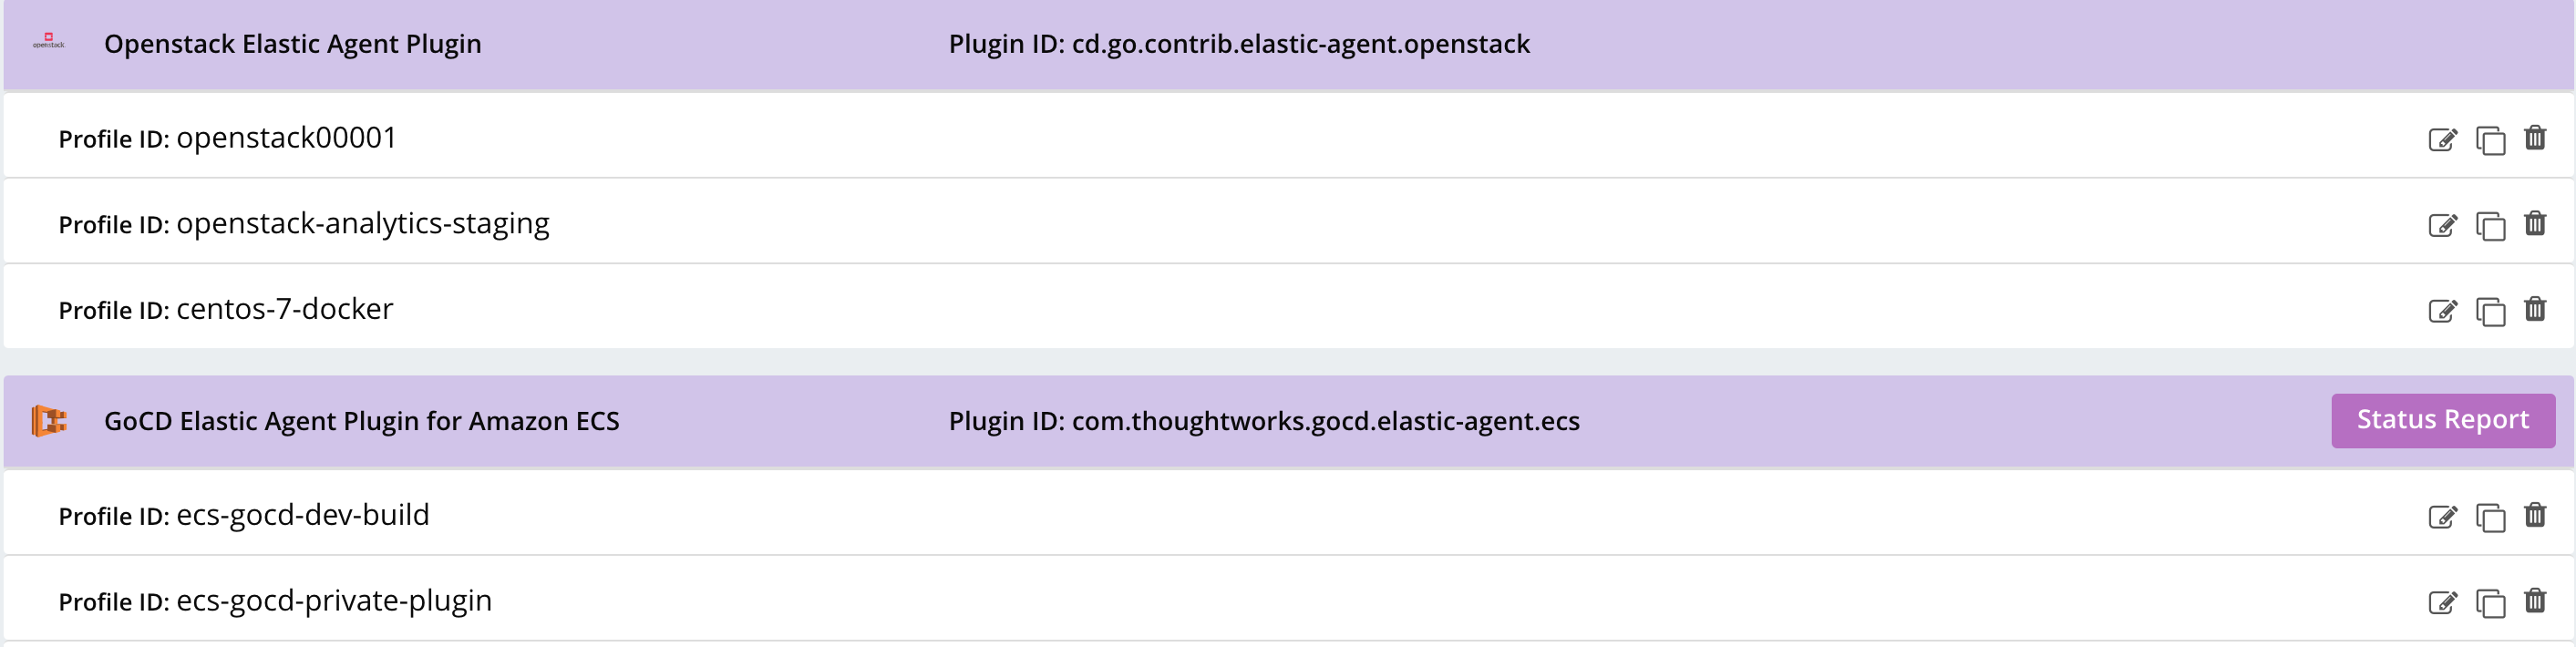 Group elastic profile by plugin id